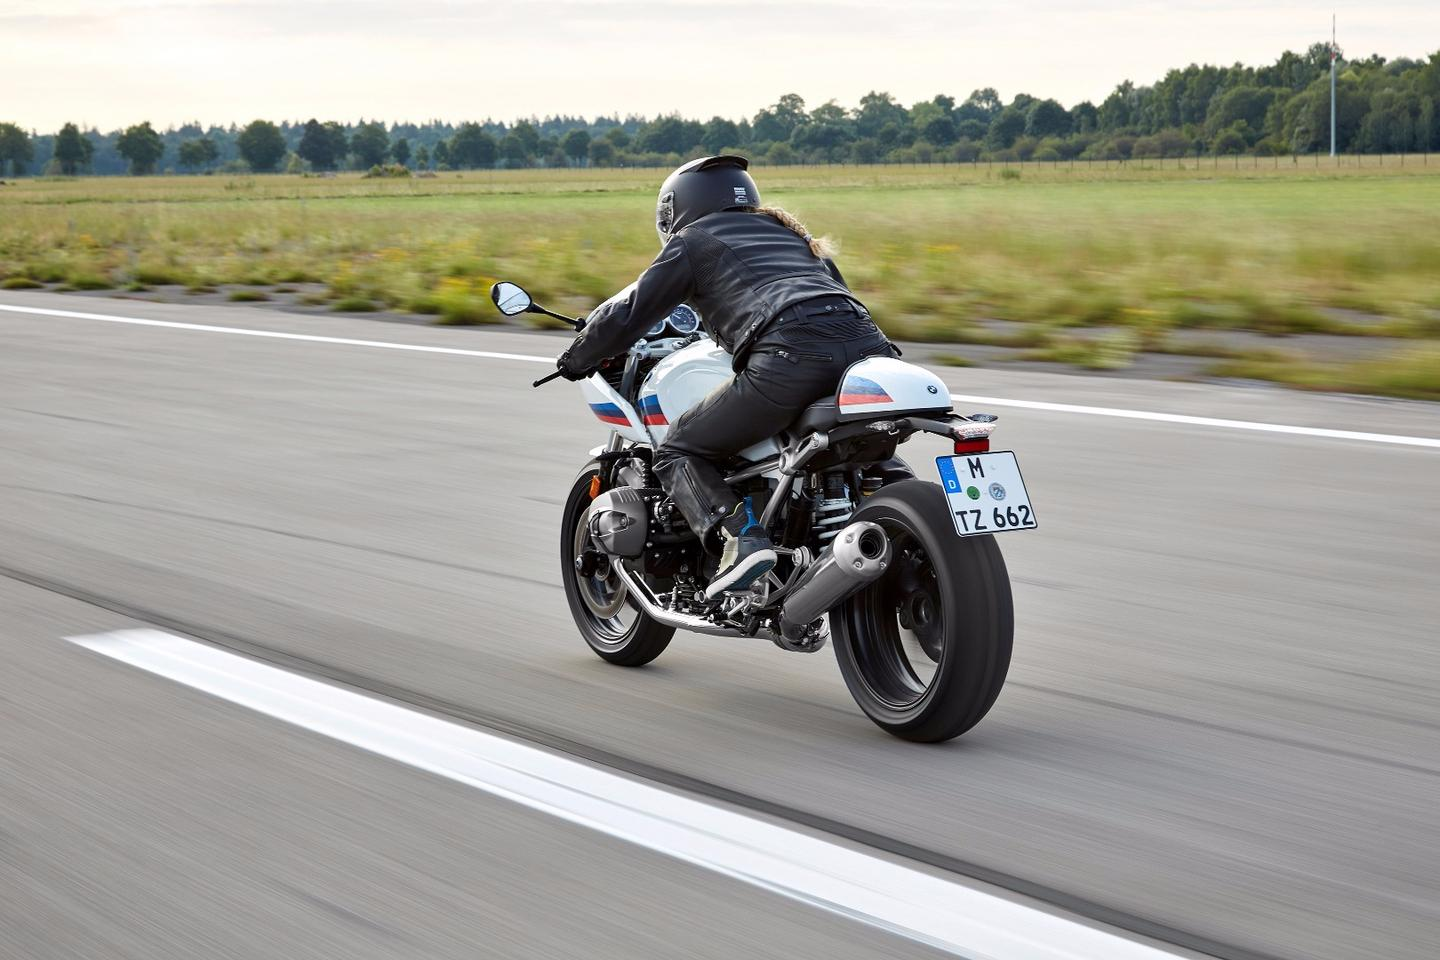 The 2017 BMW R nineT Racer in action